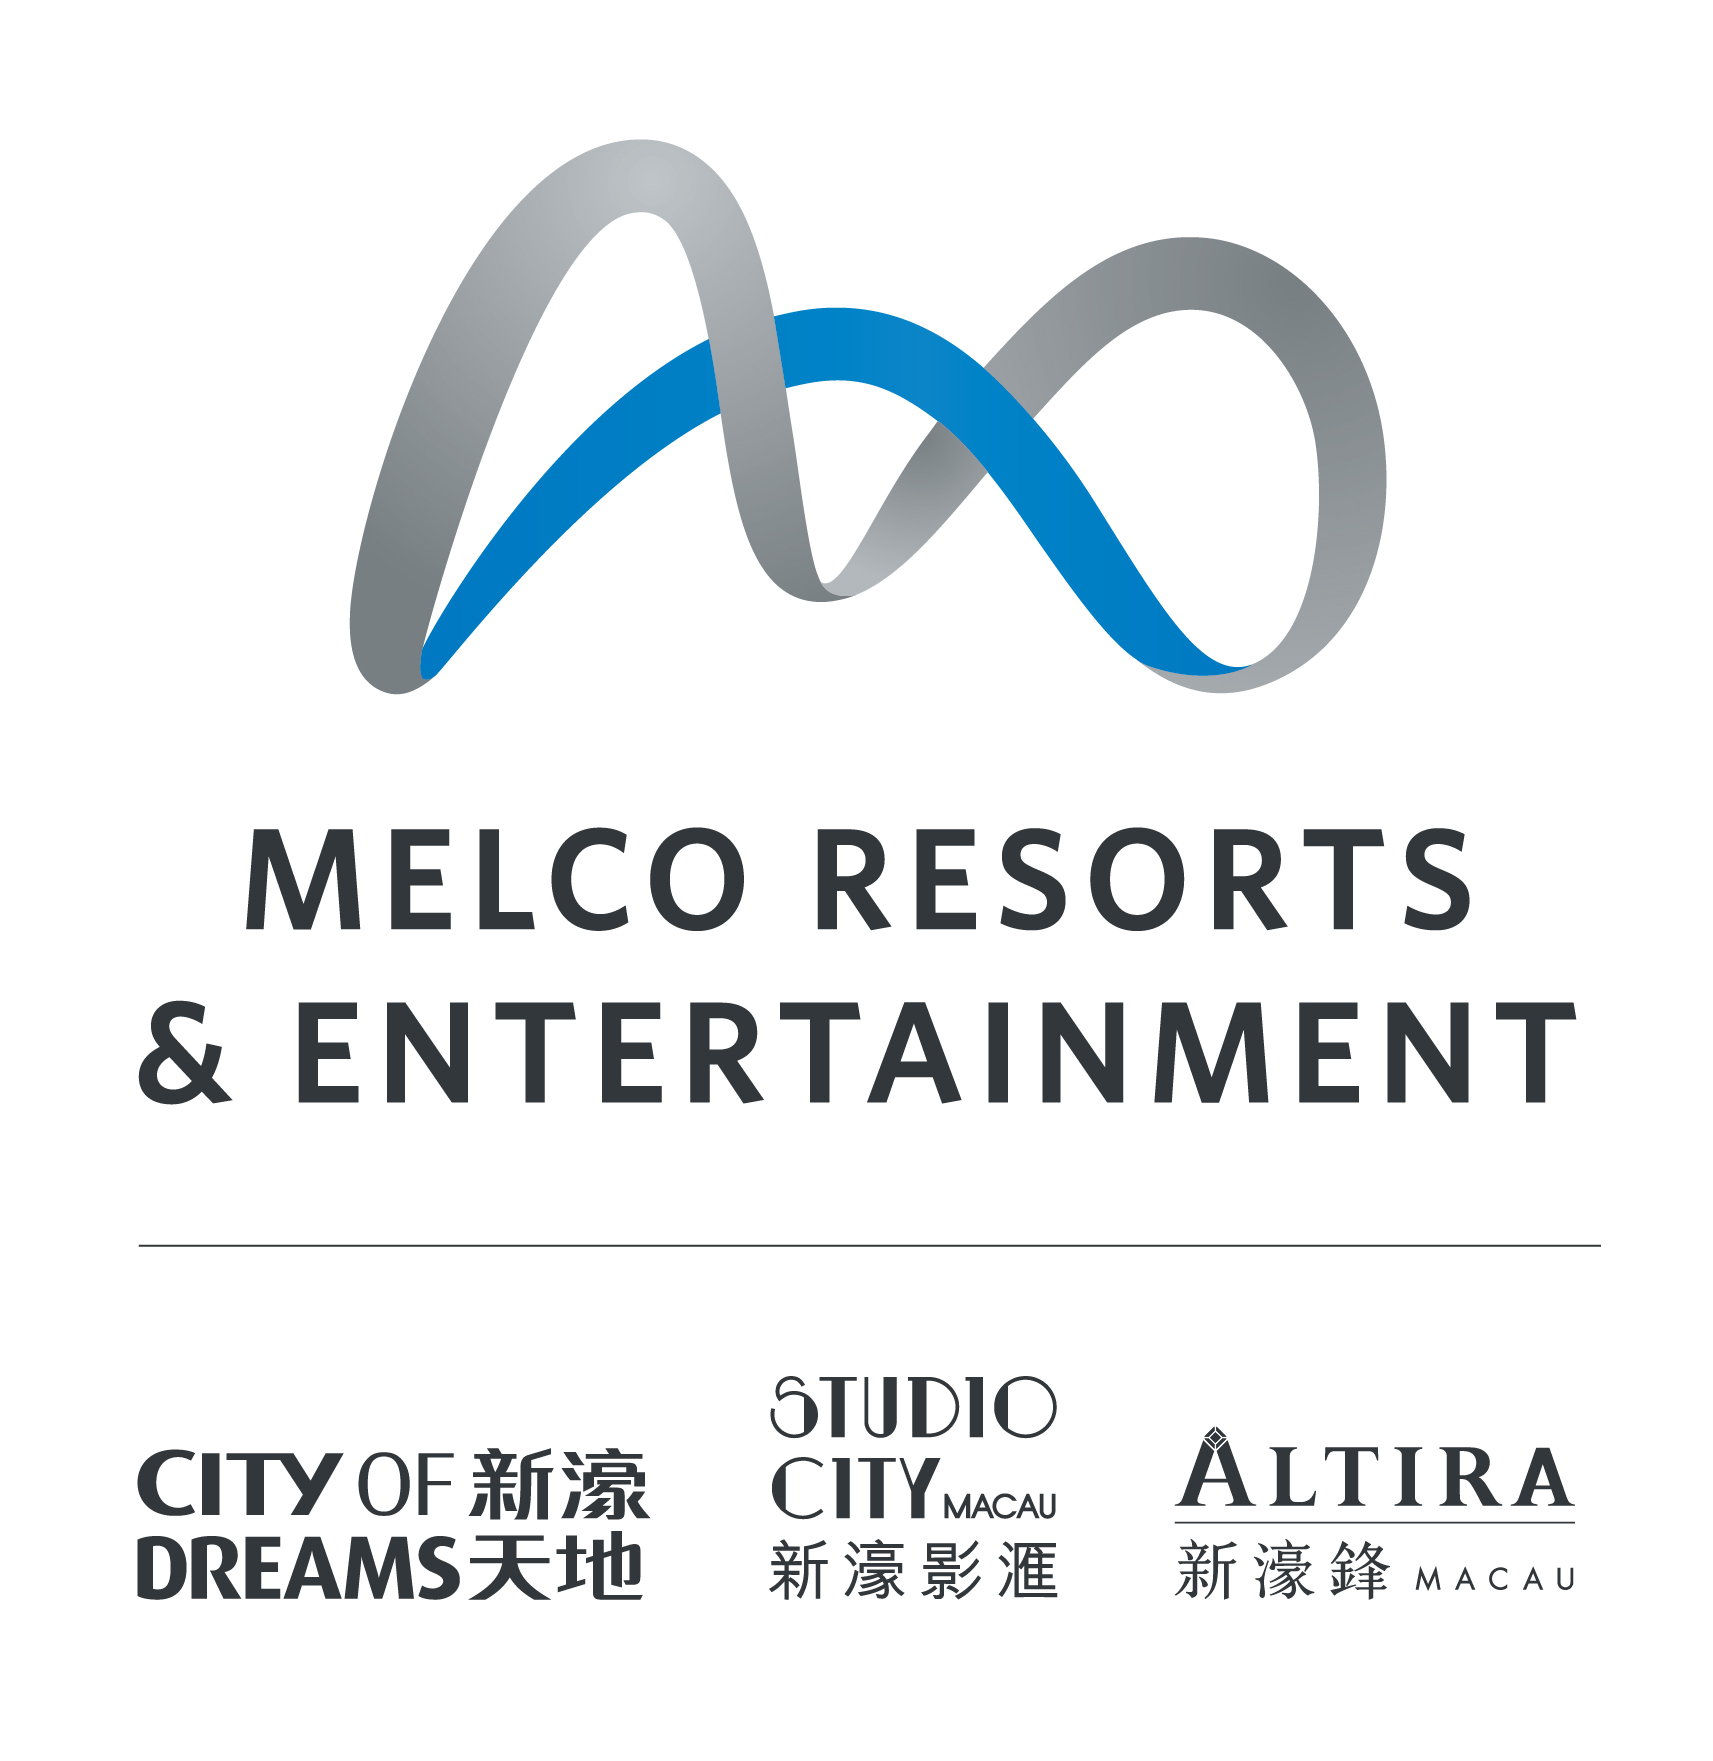 Melco Resorts & Entertainment 標誌